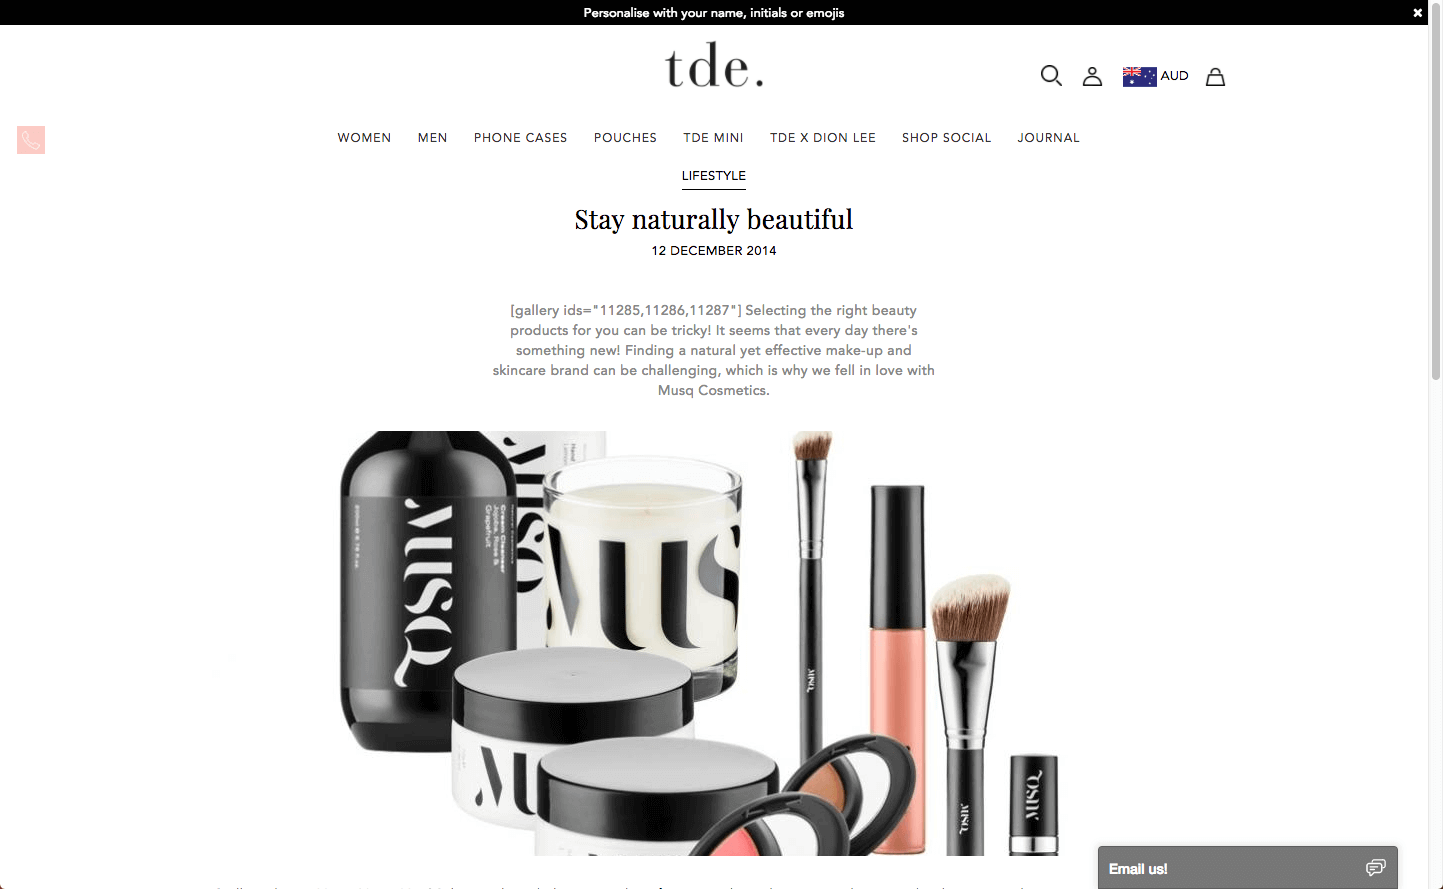 The Daily Edited Musq Cosmetics